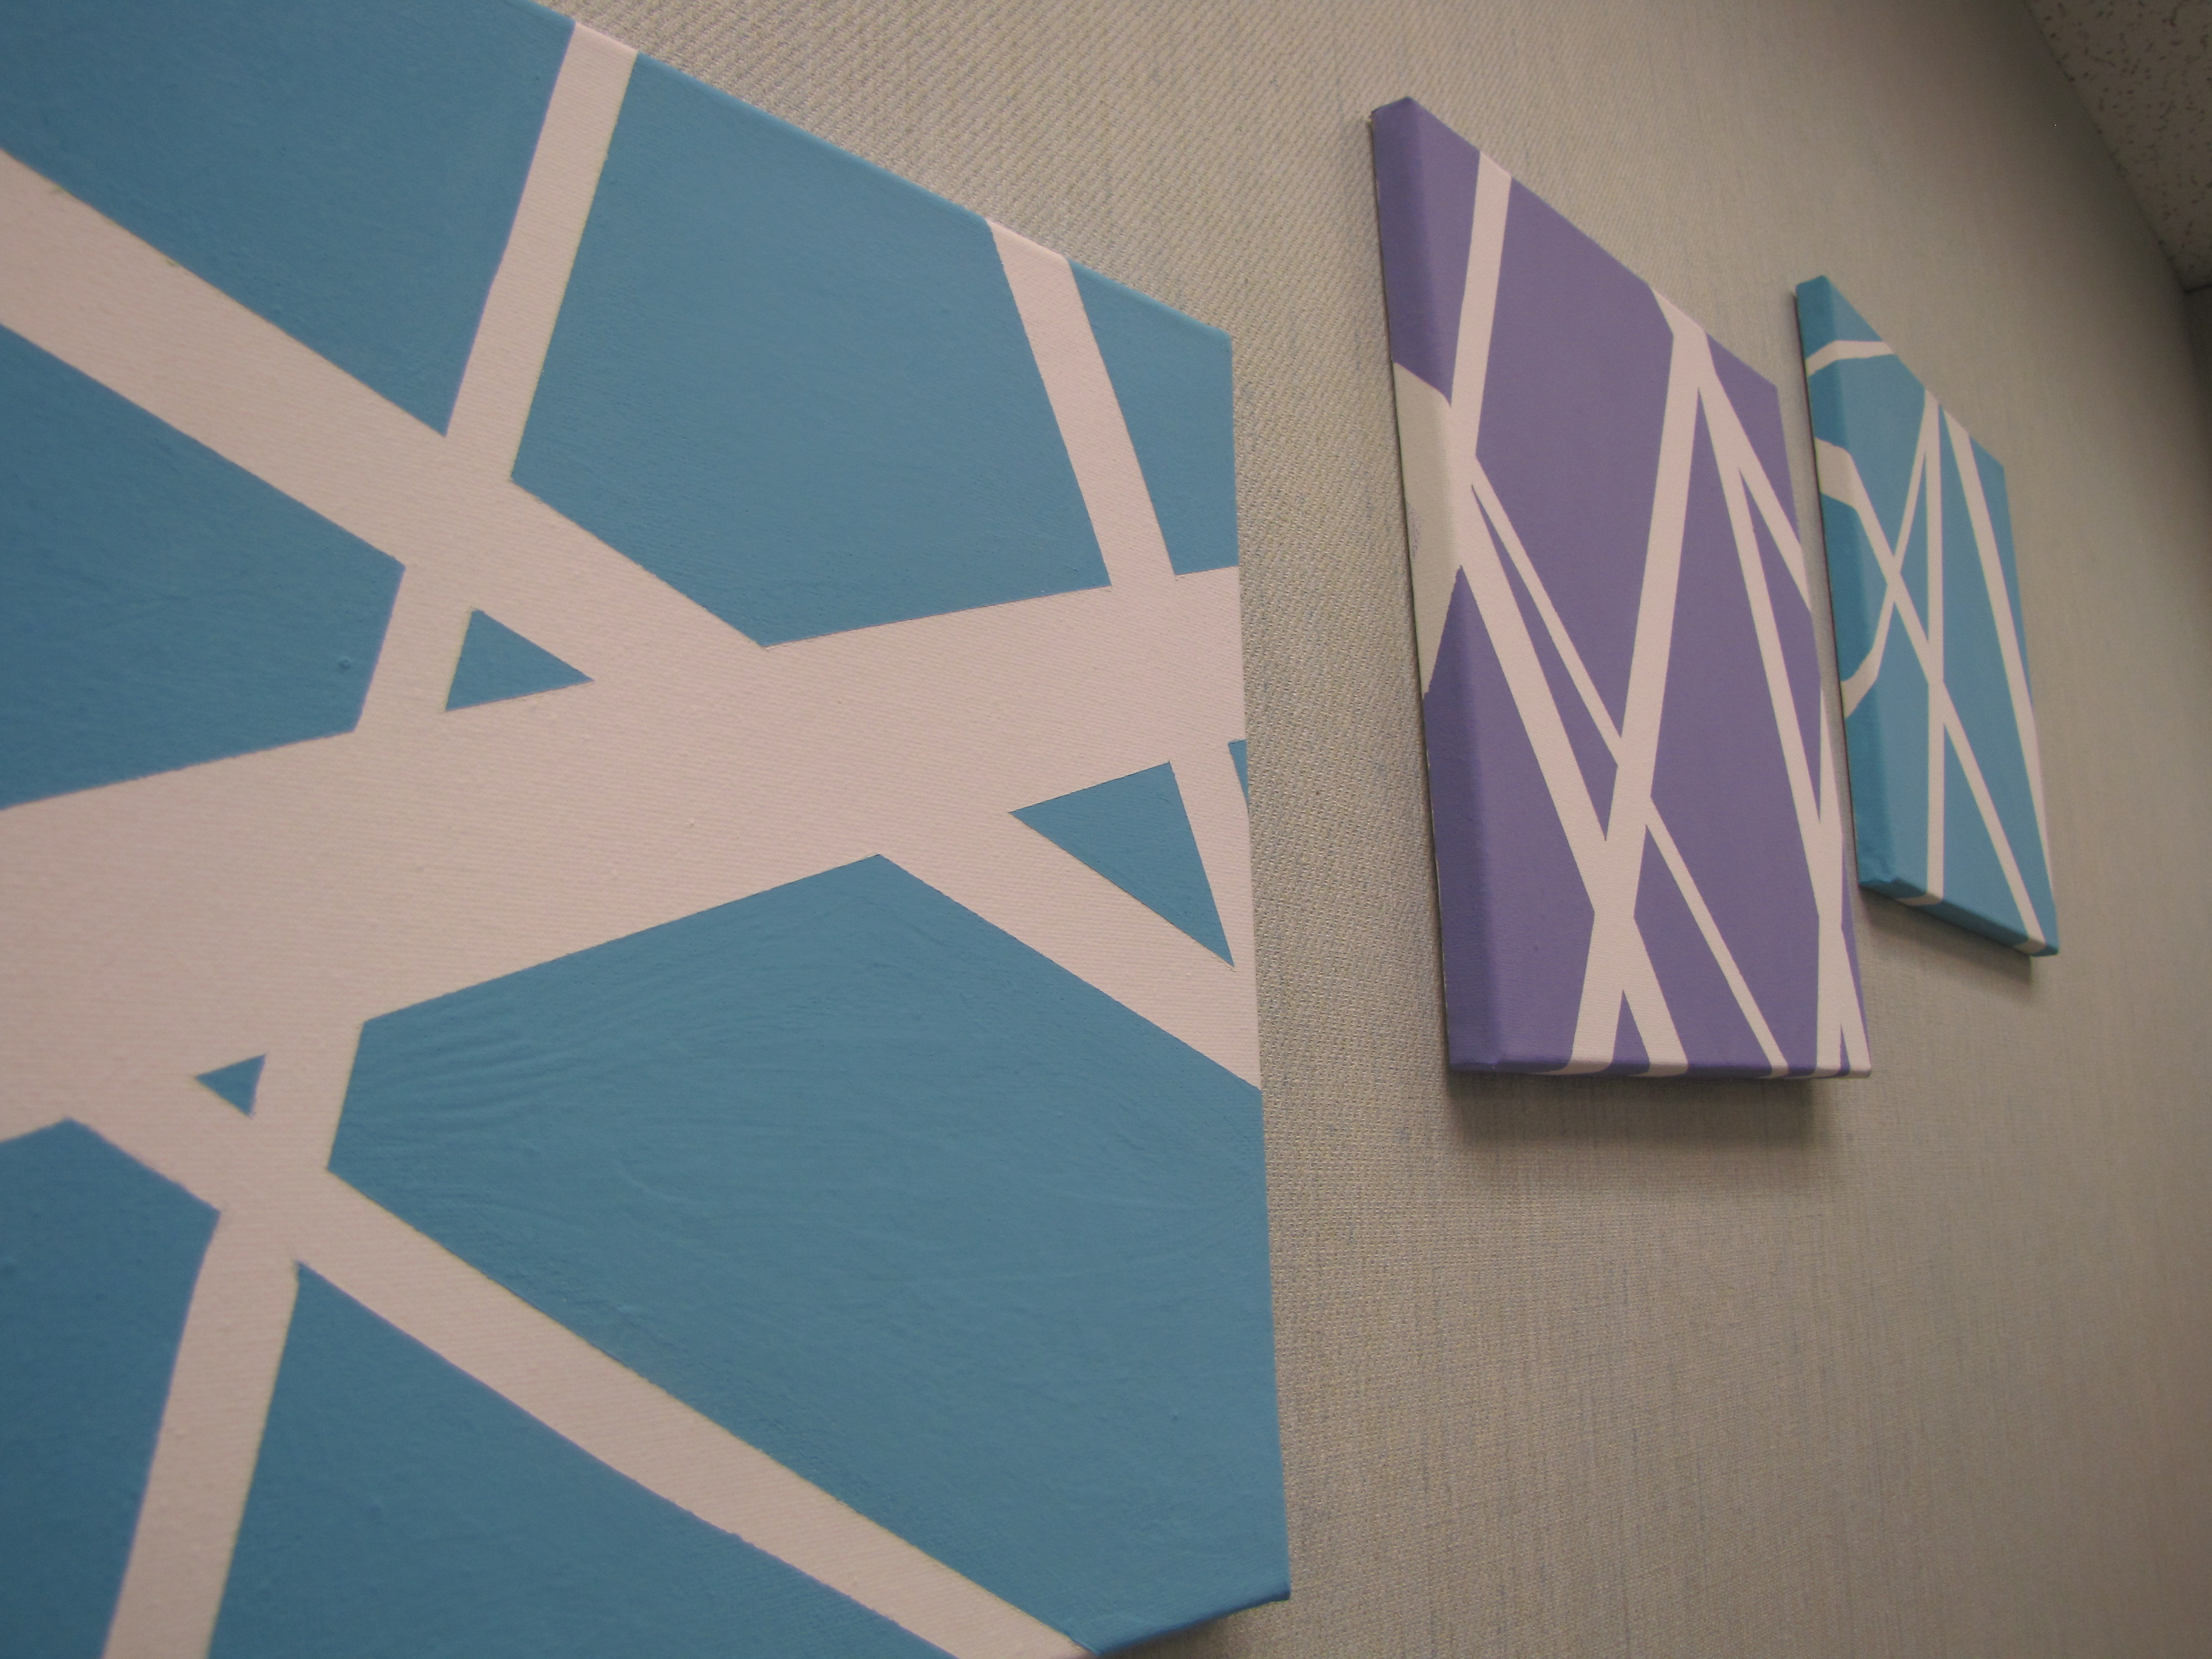 Best ideas about DIY Wall Art Painting . Save or Pin DIY Canvas Wall Art Now.